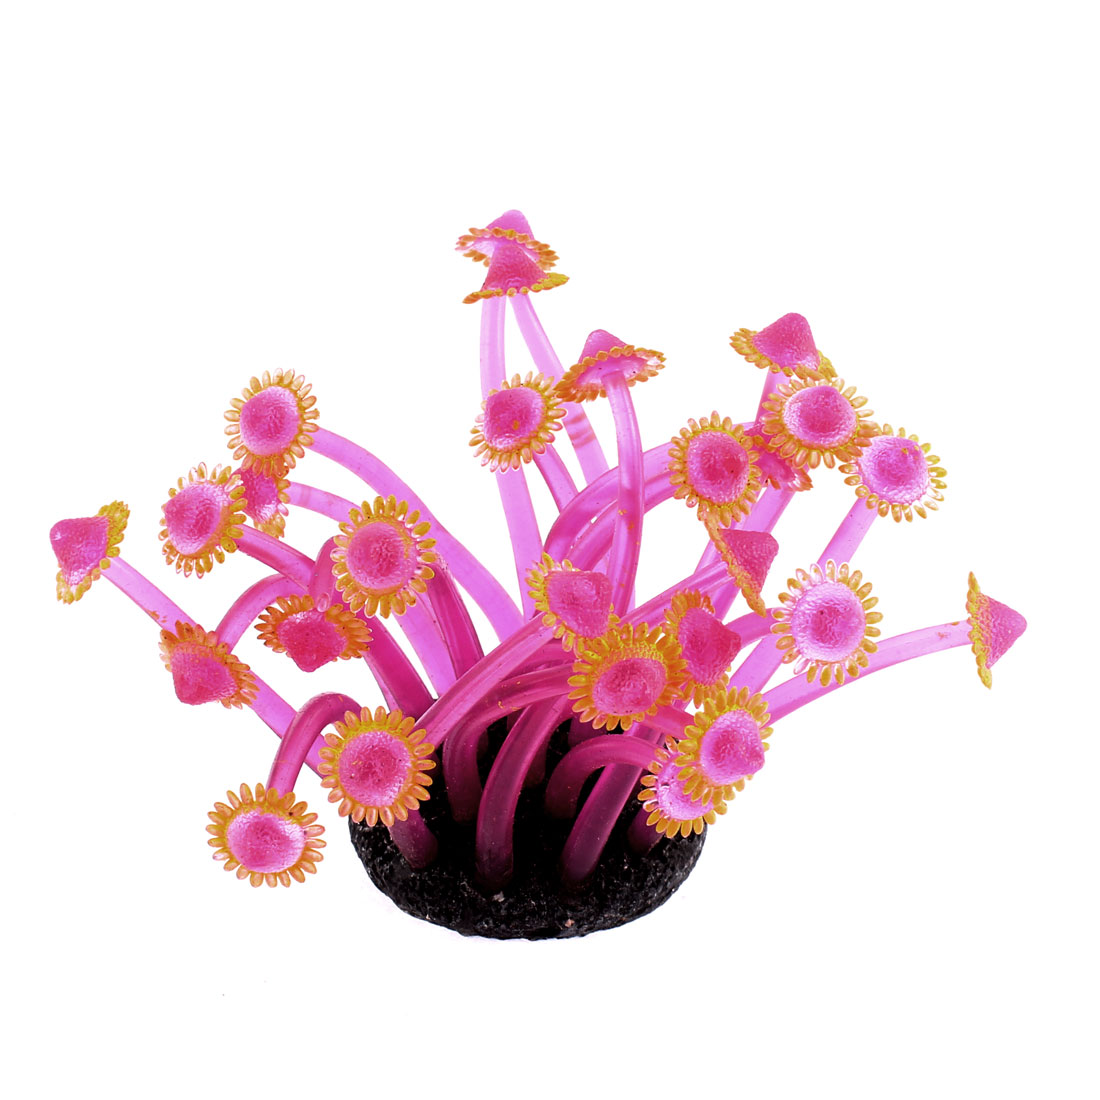 Aquarium Fish Tank Soft Silicone Emulation Anemone Coral Ornament Yellow Fuchsia